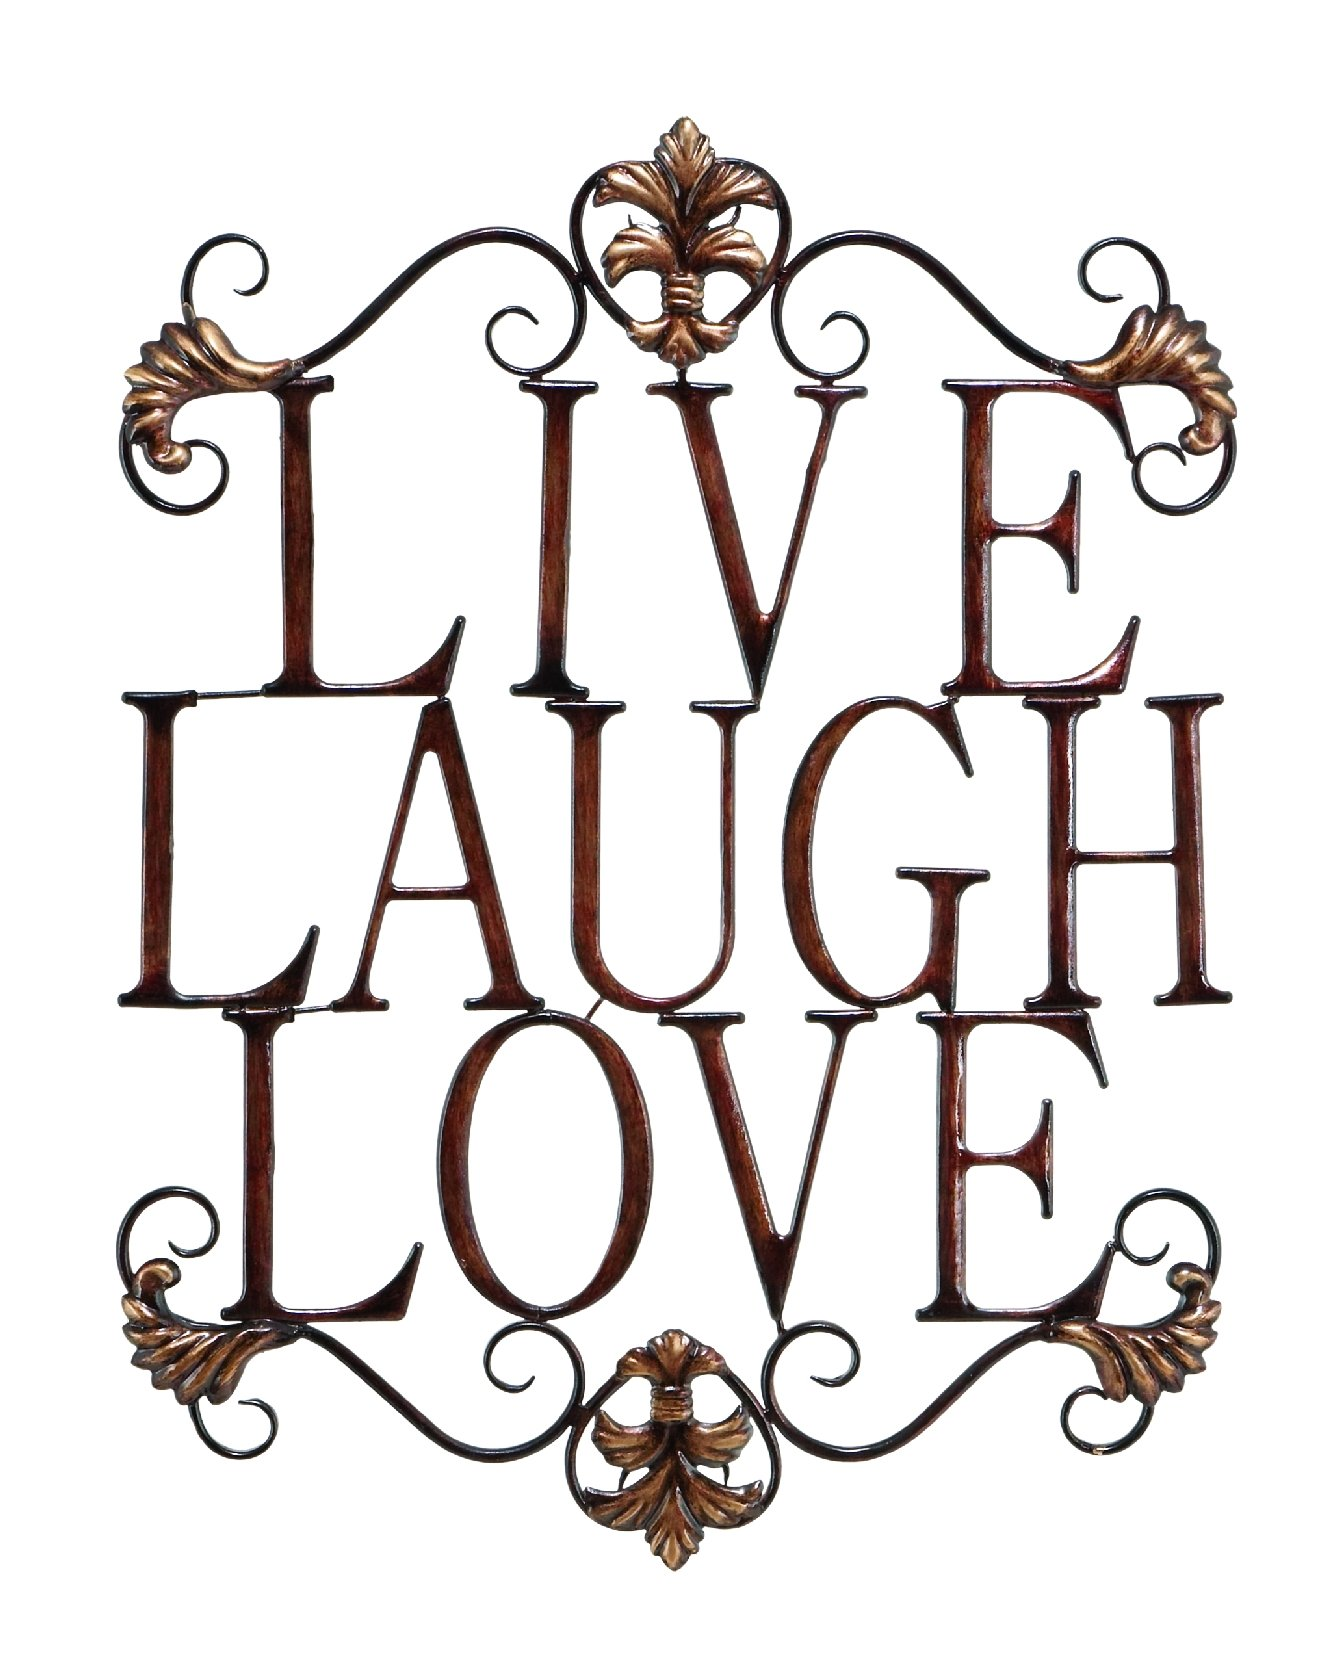 Live Laugh Love Modern Abstract Metal Wall Art Home Decor Decoration 28''h, 21''w by Deco 79